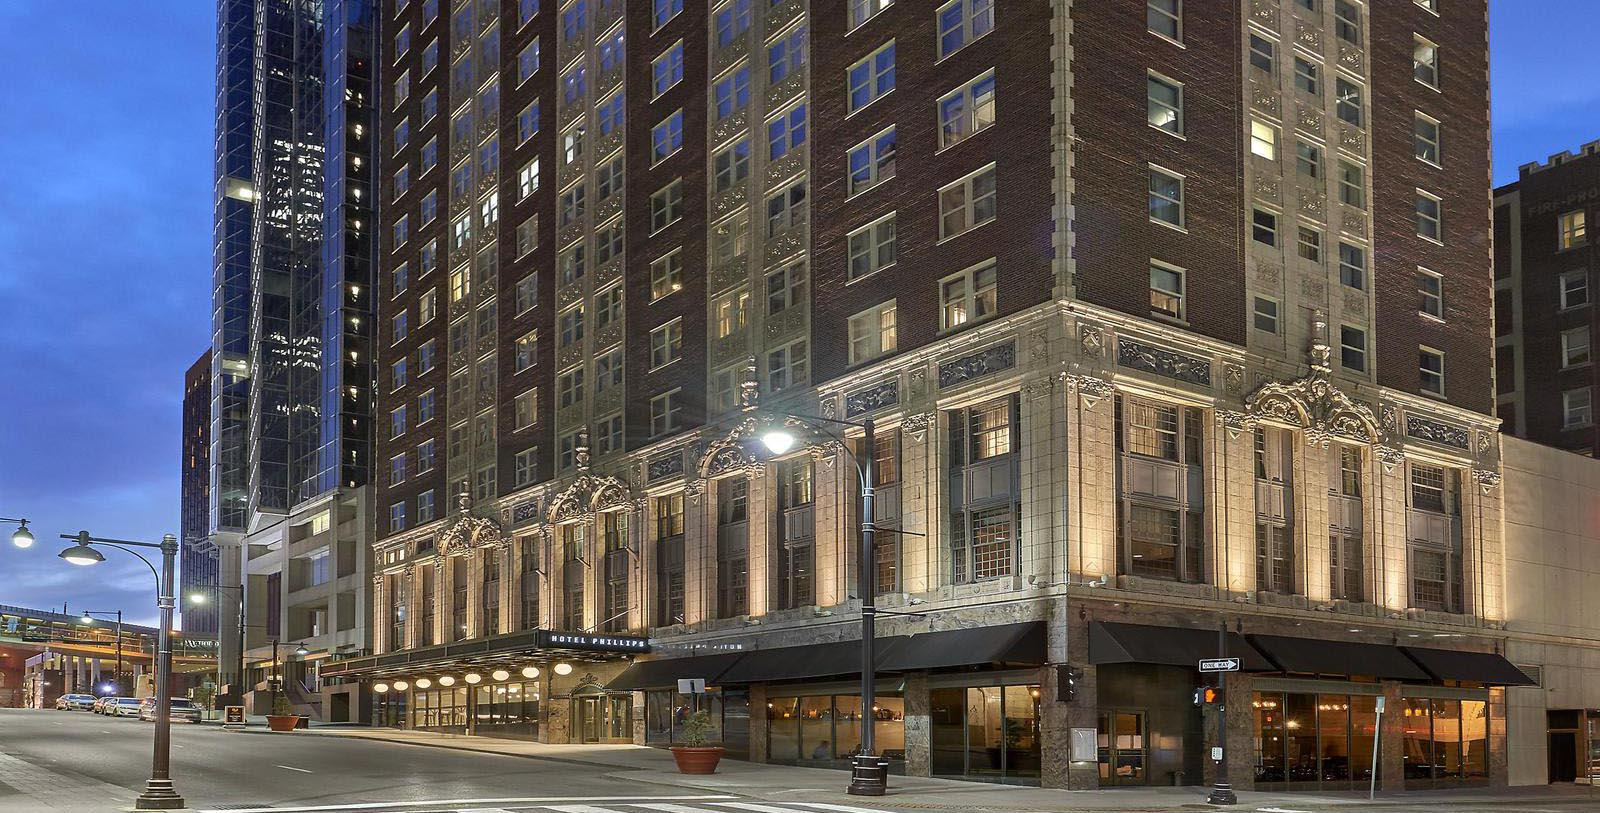 Image of Exterior at Night, Hotel Phillips Kansas City, Missouri, 1931, Curio Collection by Hilton, Member of Historic Hotels of America, Explore